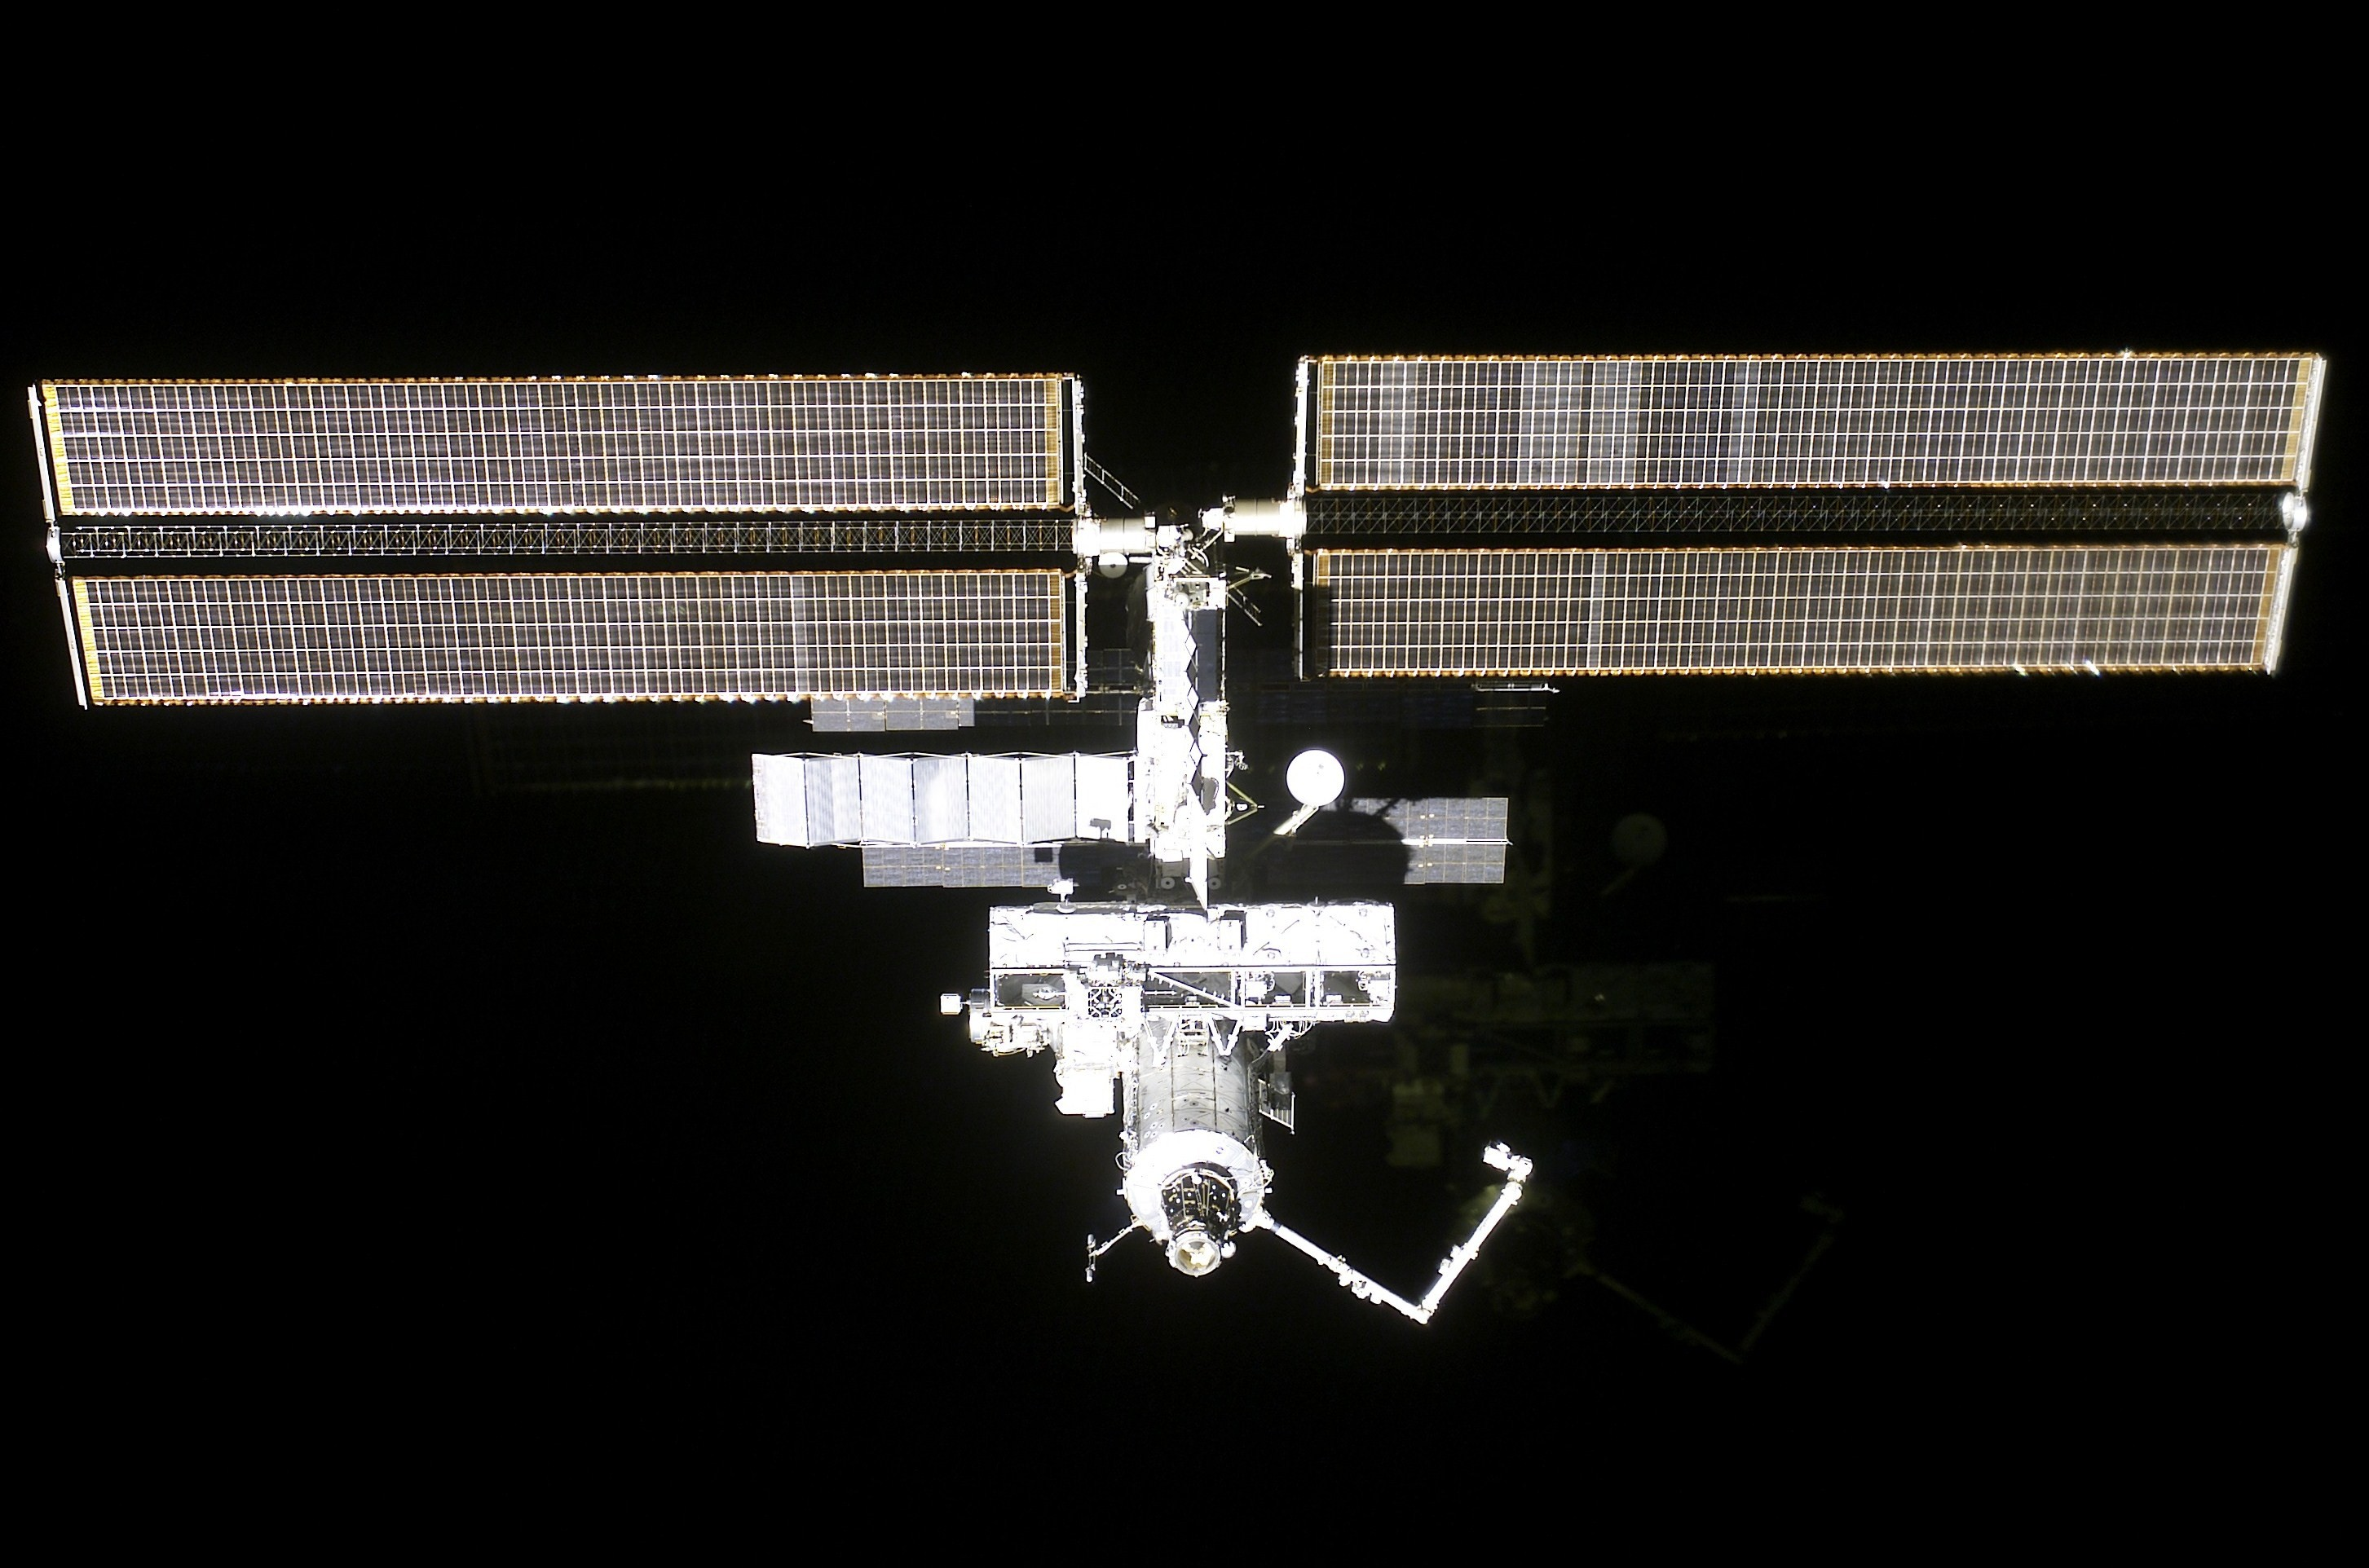 Assembly of the International Space Station